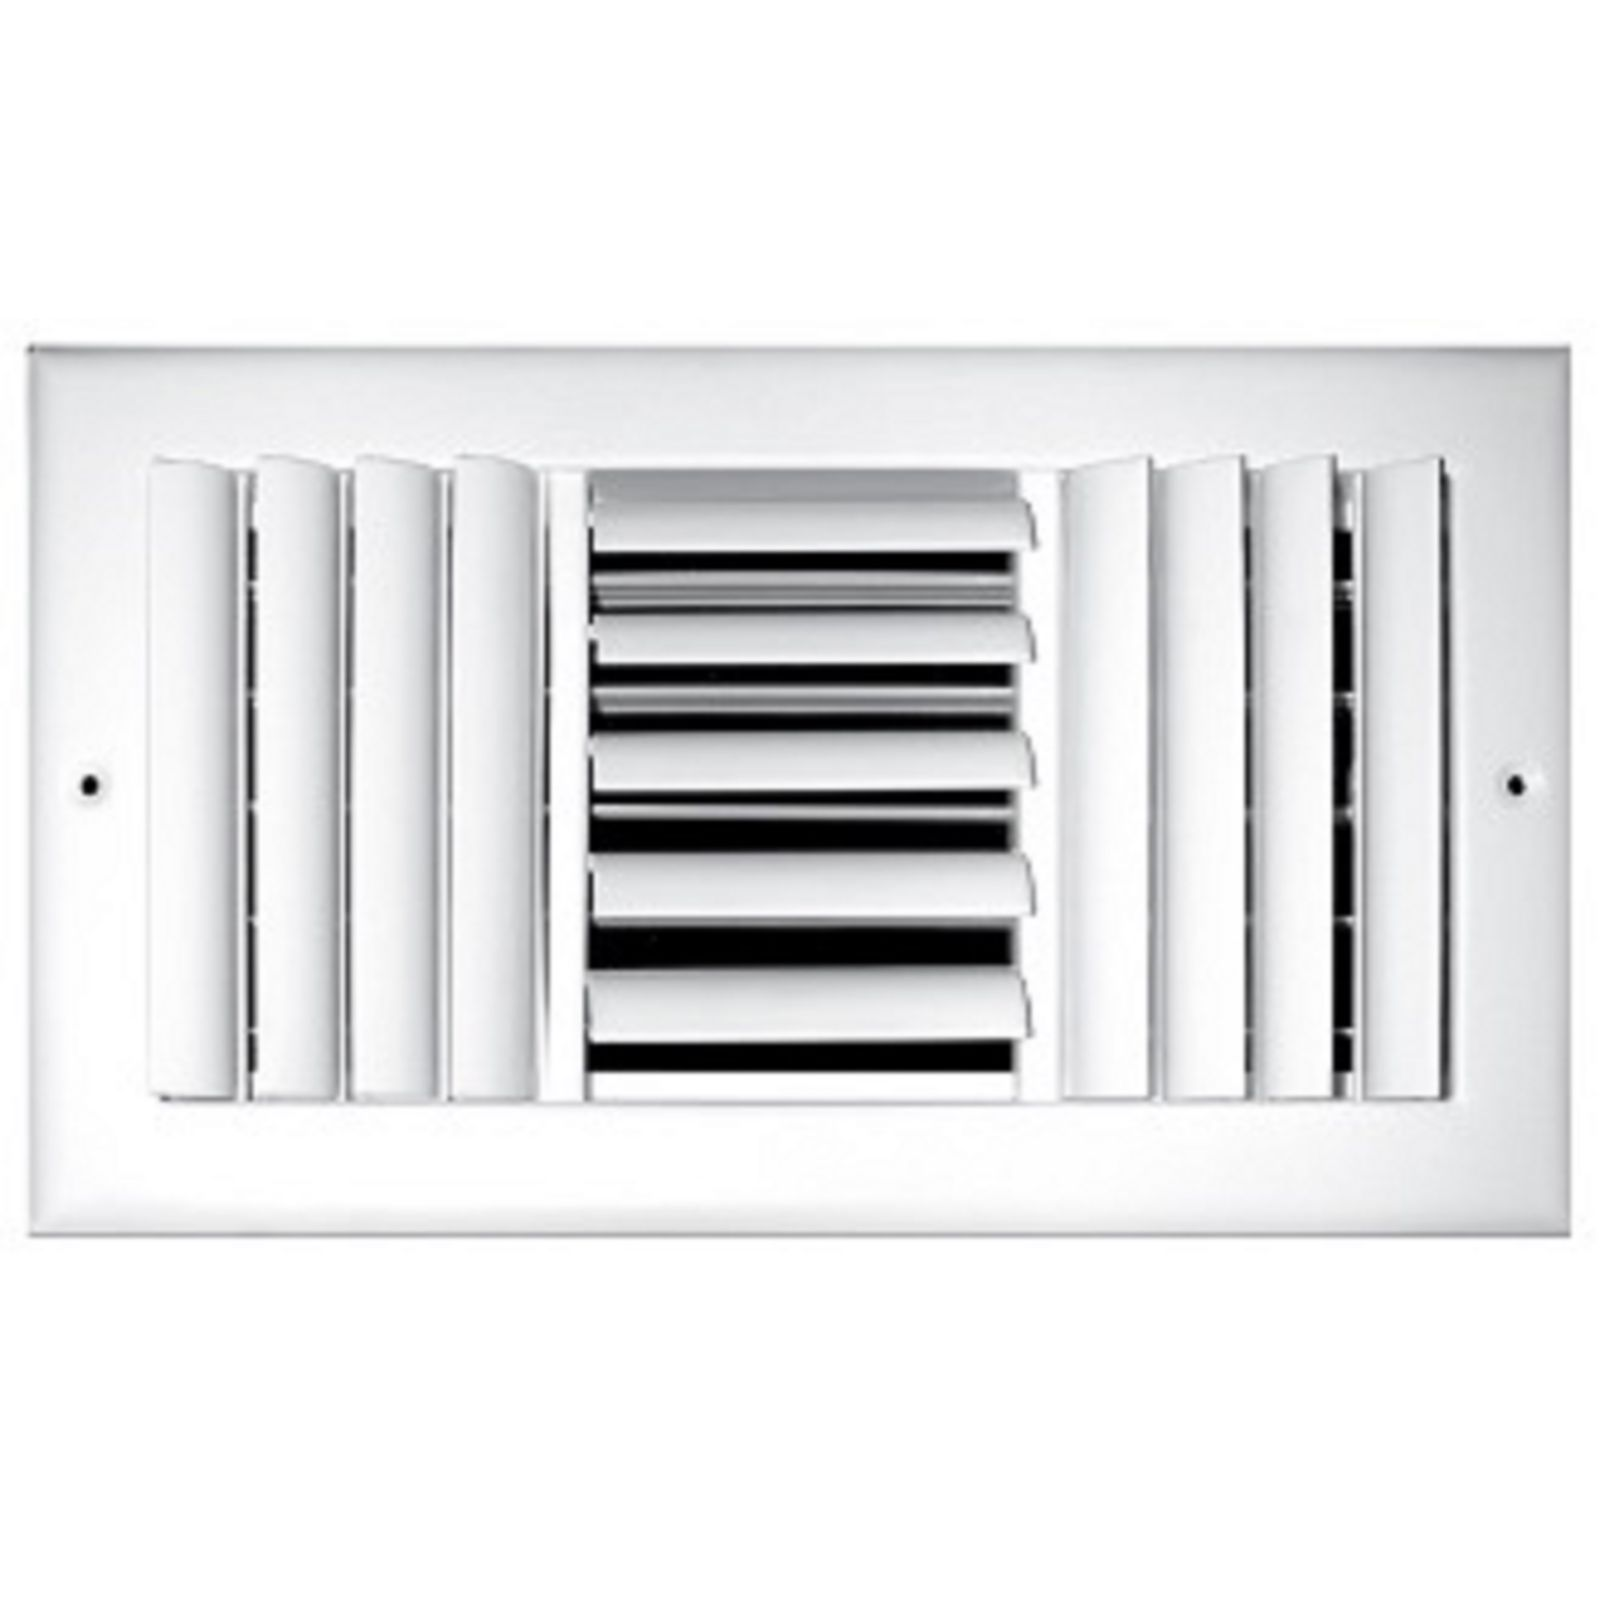 "TRUaire 303M 10X10 - Steel Adjustable Curved Blade Wall/Ceiling Register With Multi Shutter Damper, 3-Way, White, 10"" X 10"""